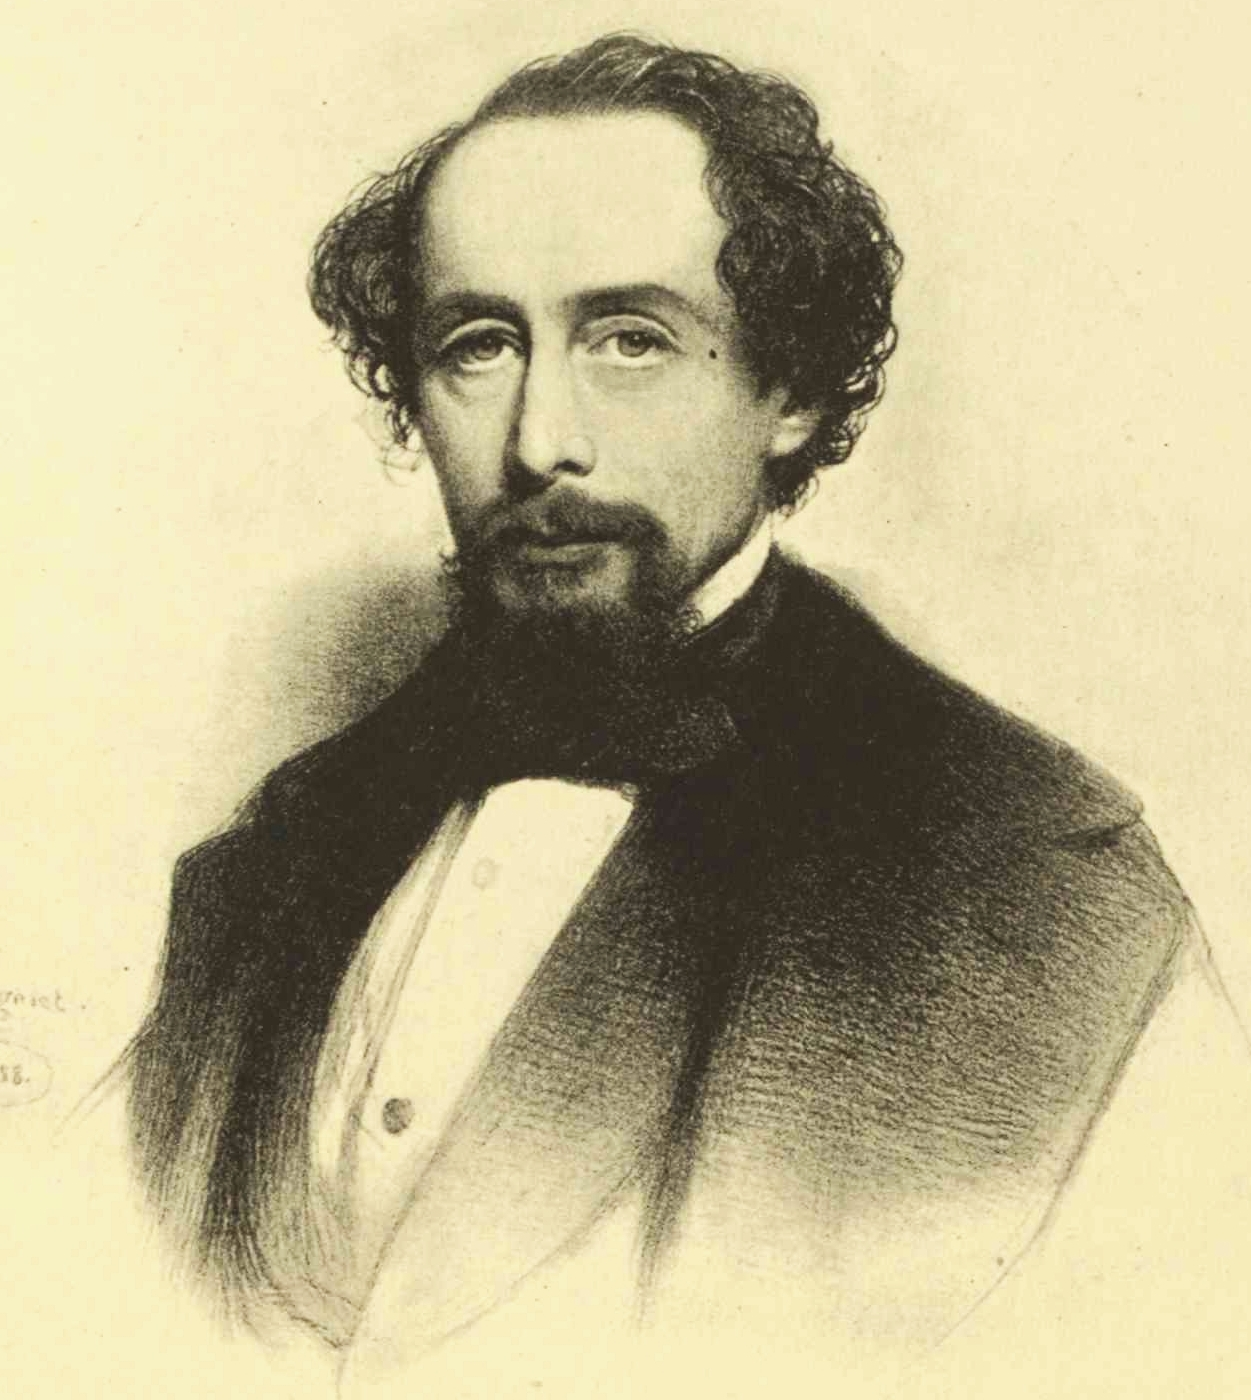 A glimpse at the life and works of charles dickens